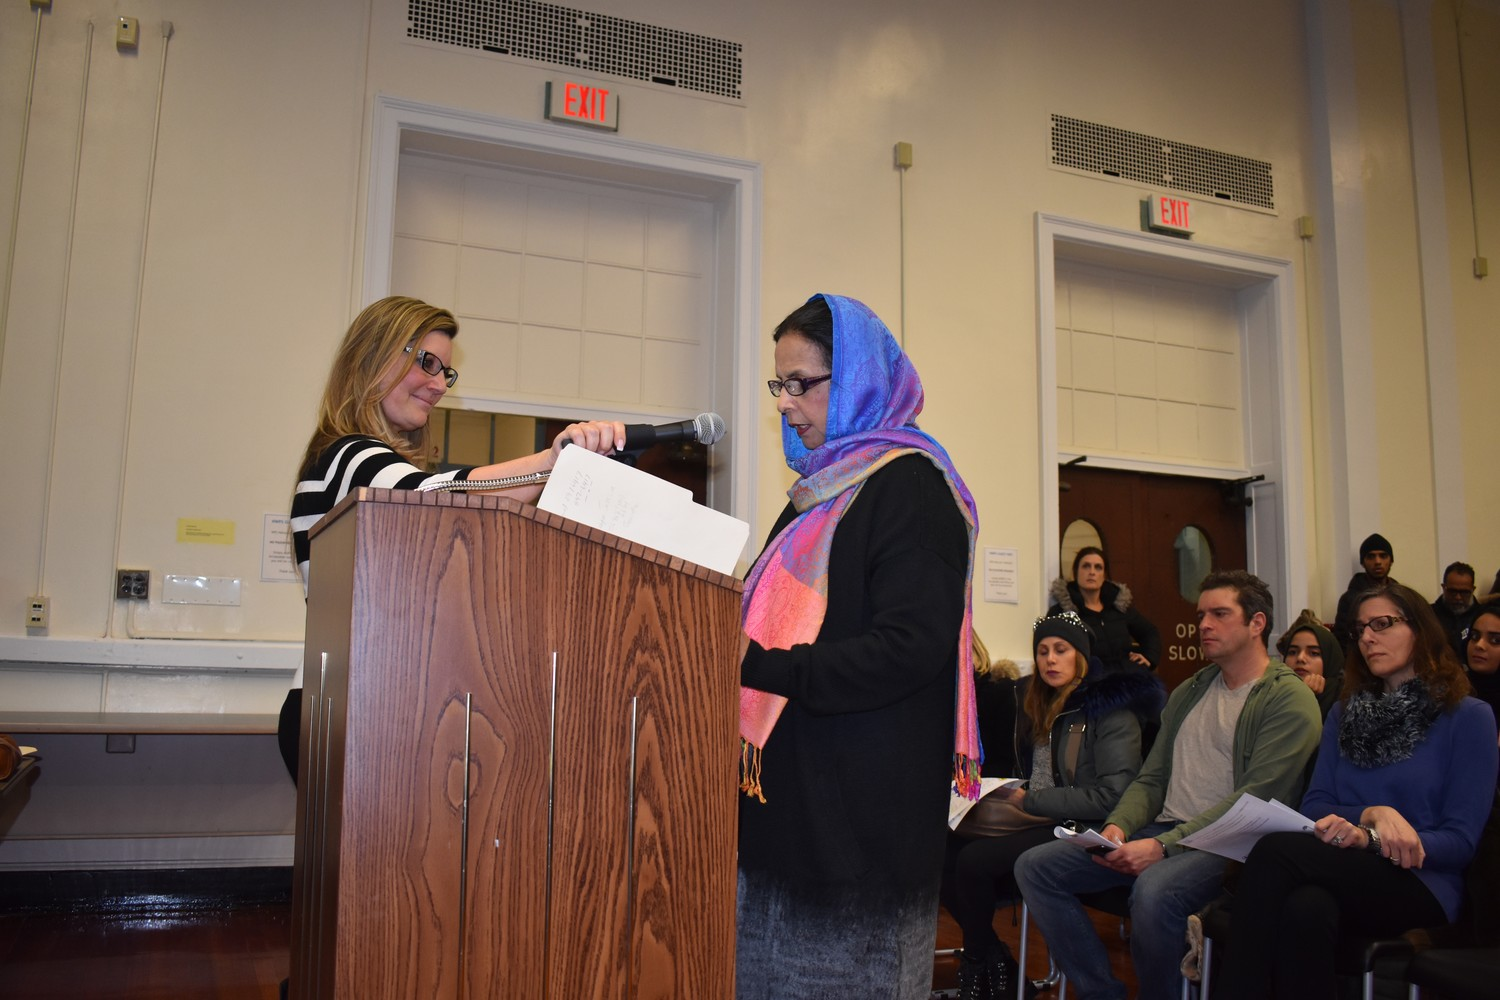 Shahnaz Mallik, right, had circulated petitions to include Eid al Fitr and Eid al Adha on Hewlett-Woodmere School District calendars since last February.